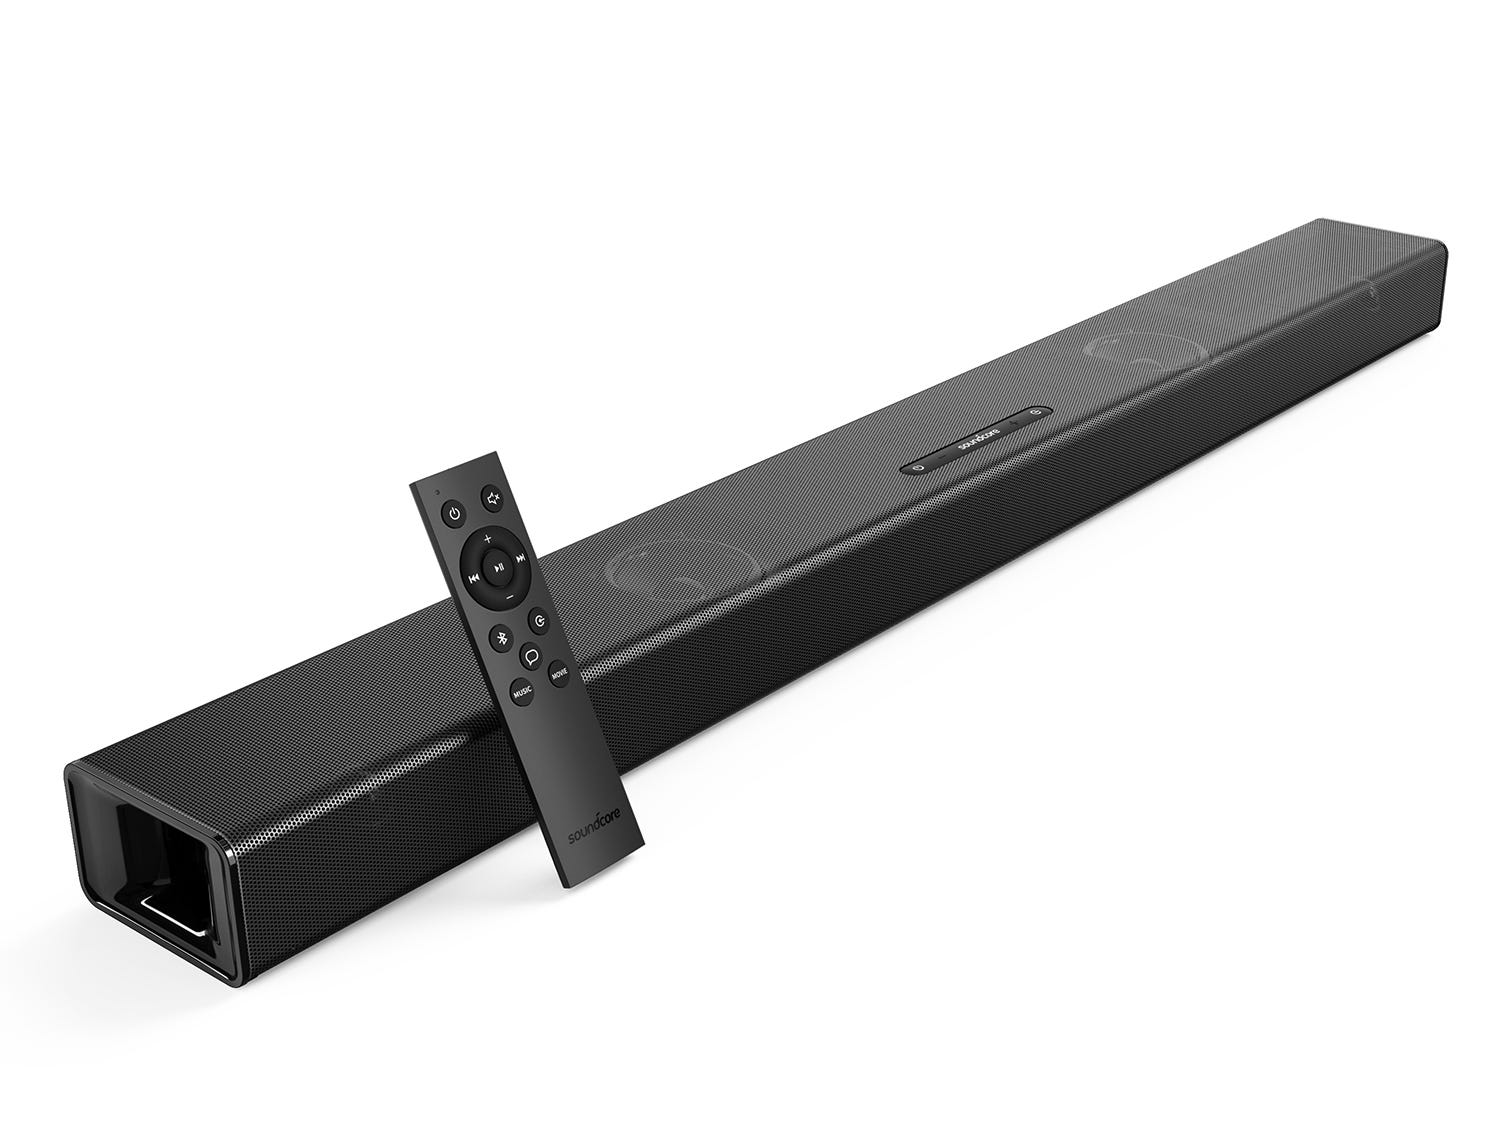 SoundCore Infini Integrated 2.1-Channel Soundbar, $99.99. With a built-in subwoofer for solid bass.